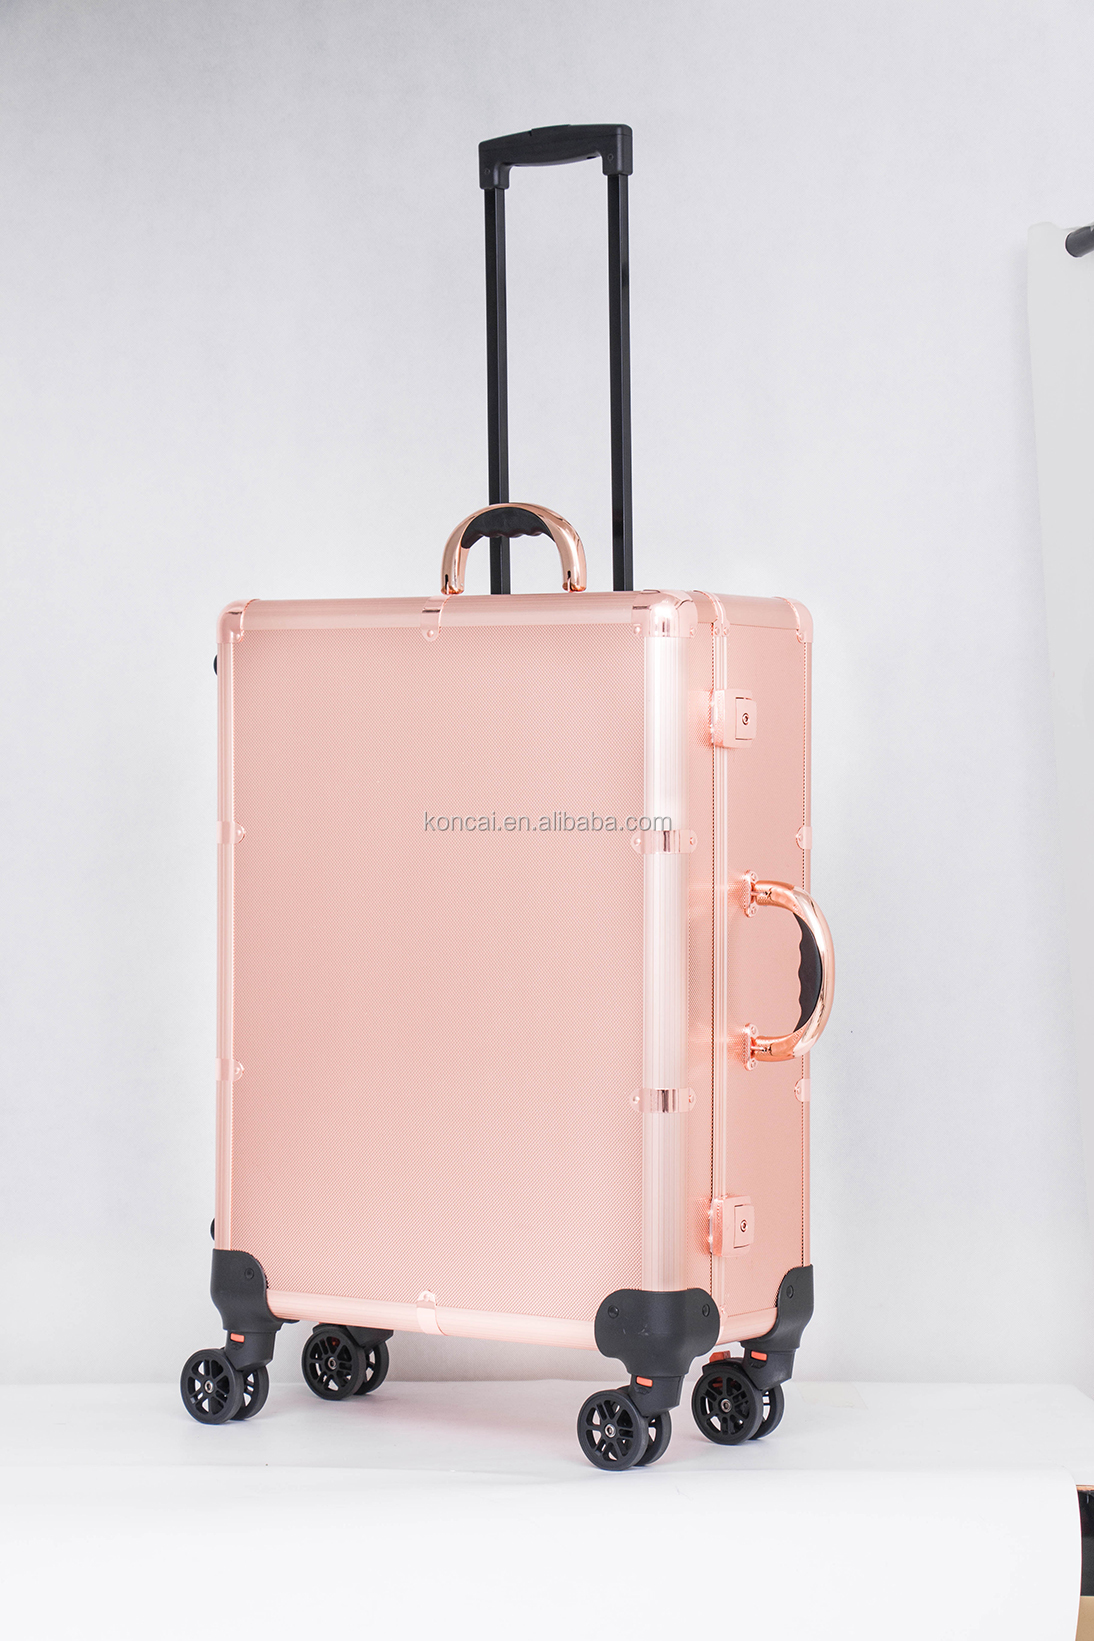 CE Certificated Professional Makeup Station with Lighted Mirror Aluminum Trolley Beauty Case KC-210